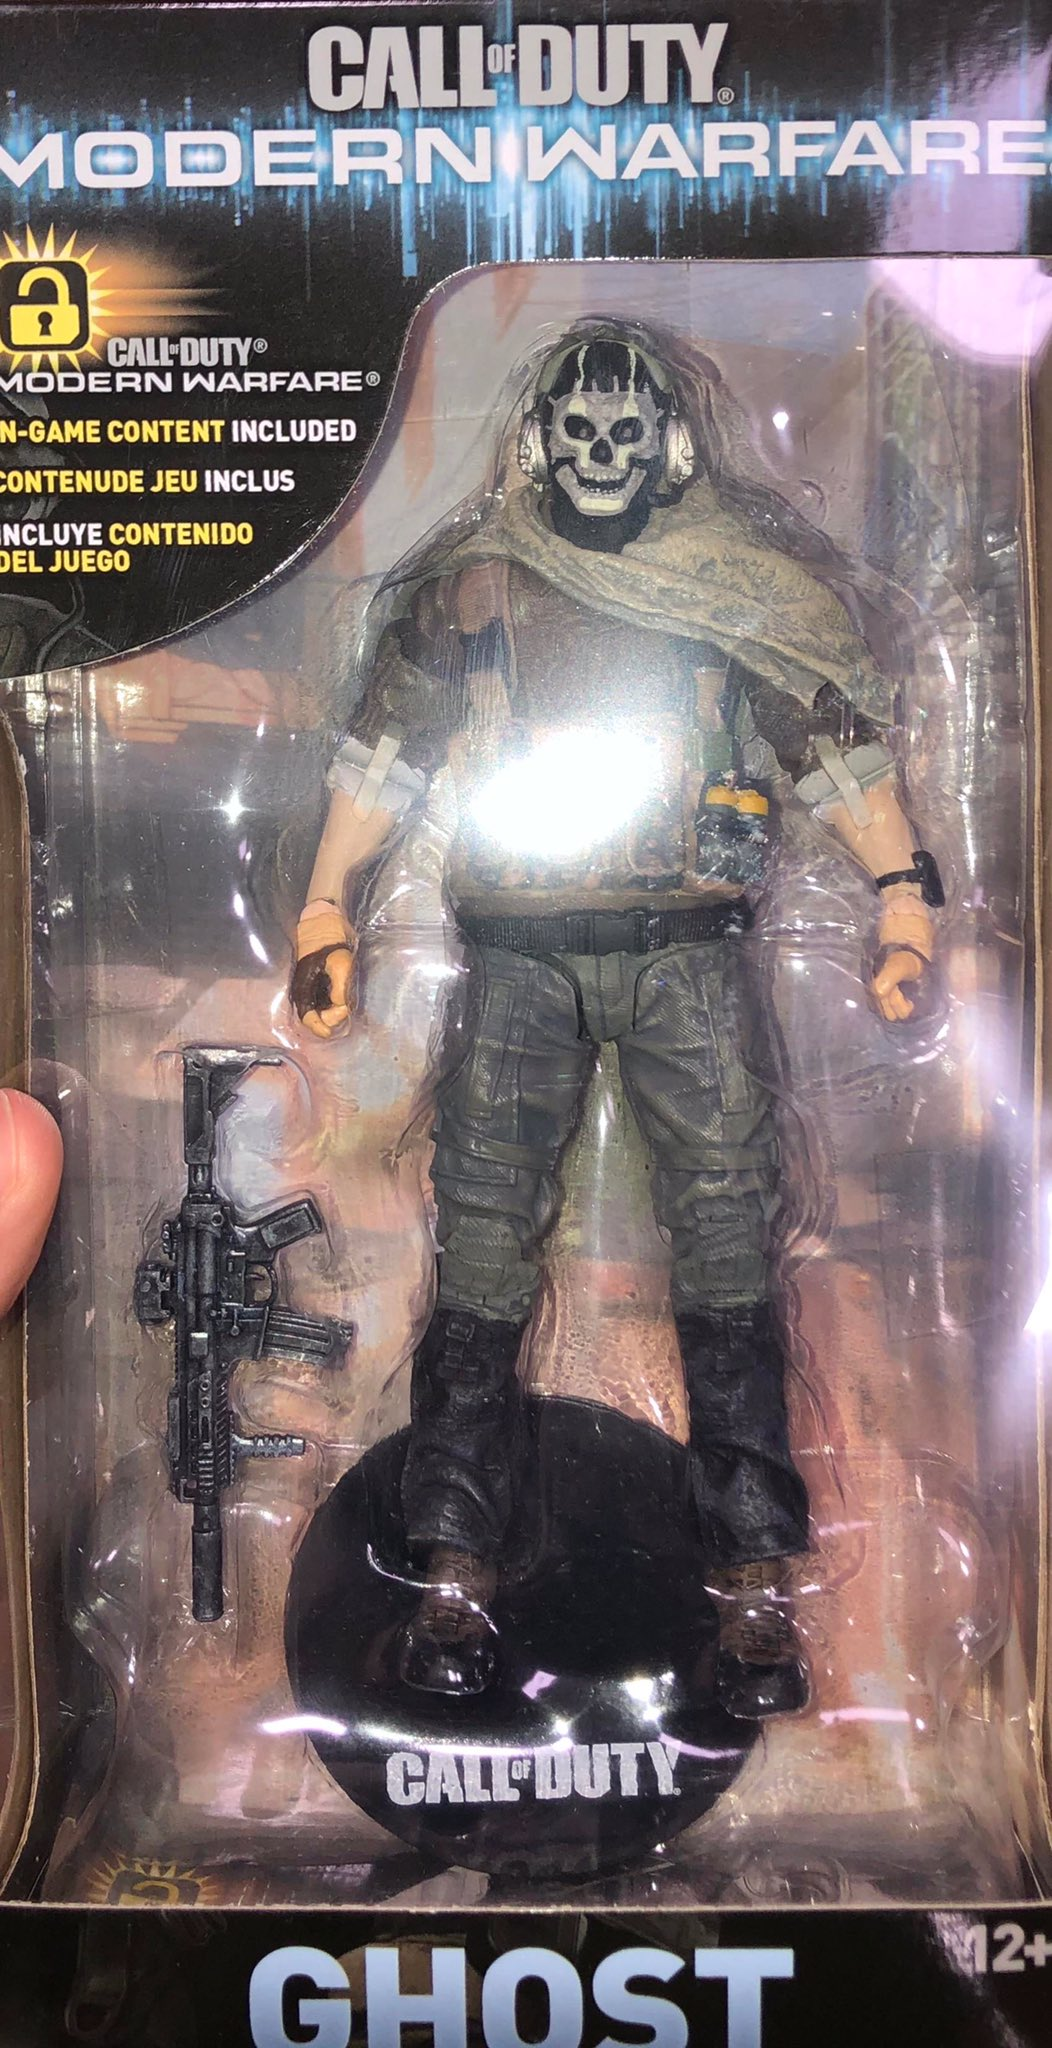 Madgaz On Twitter Interesting Find Ghost Action Figure But